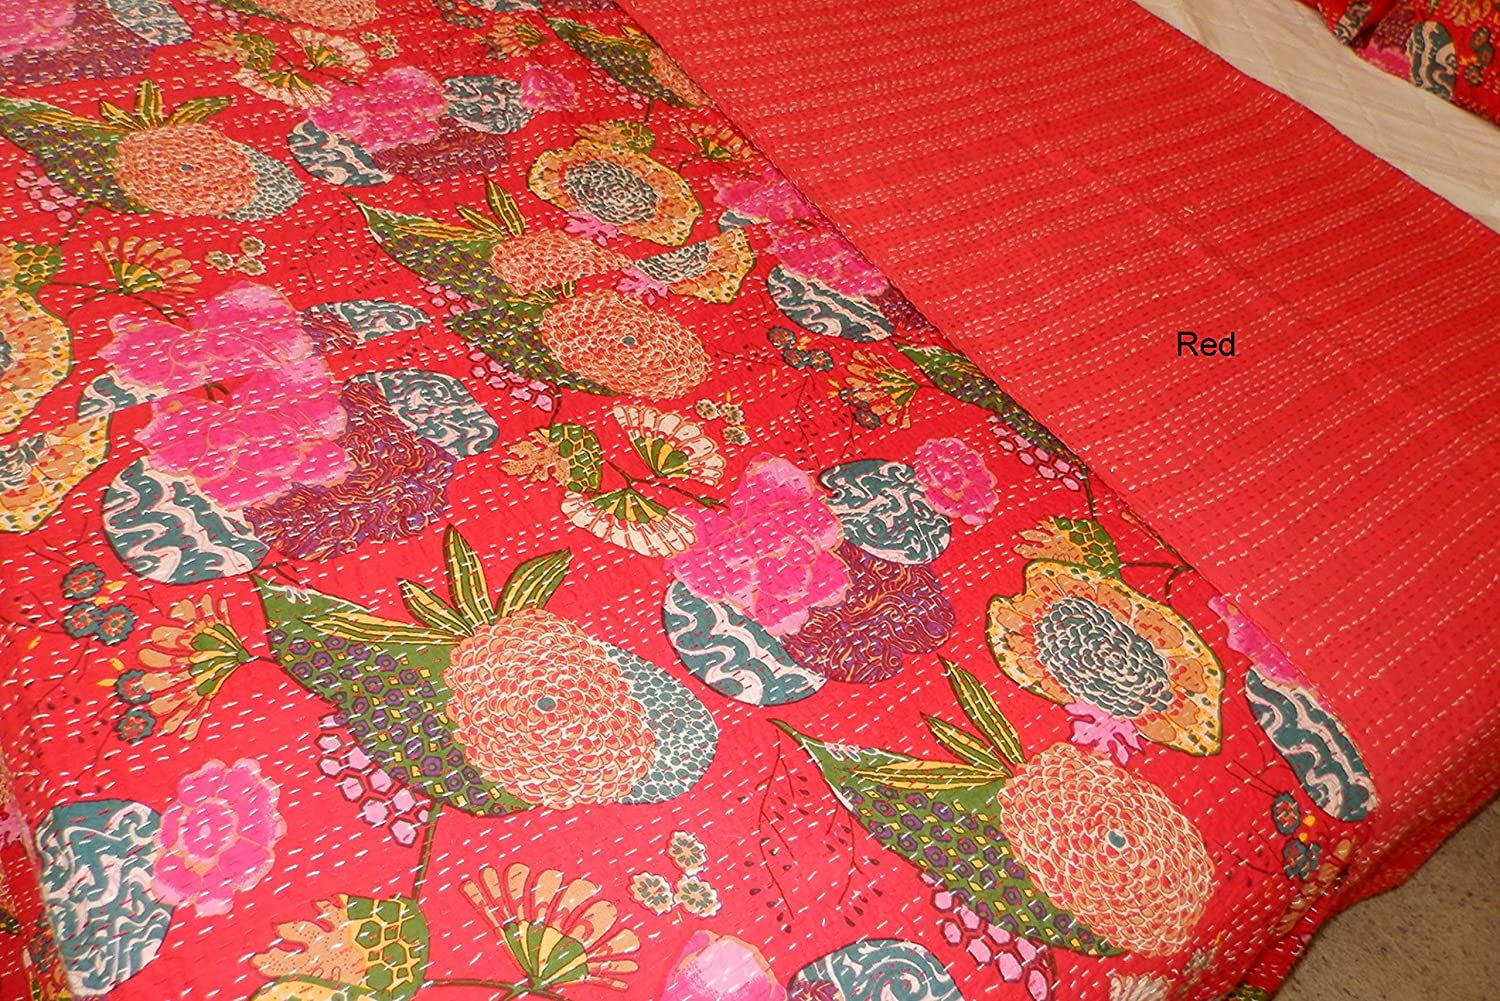 Christmas Home Decor Kantha Quilt Queen Comforter Tropical bedding